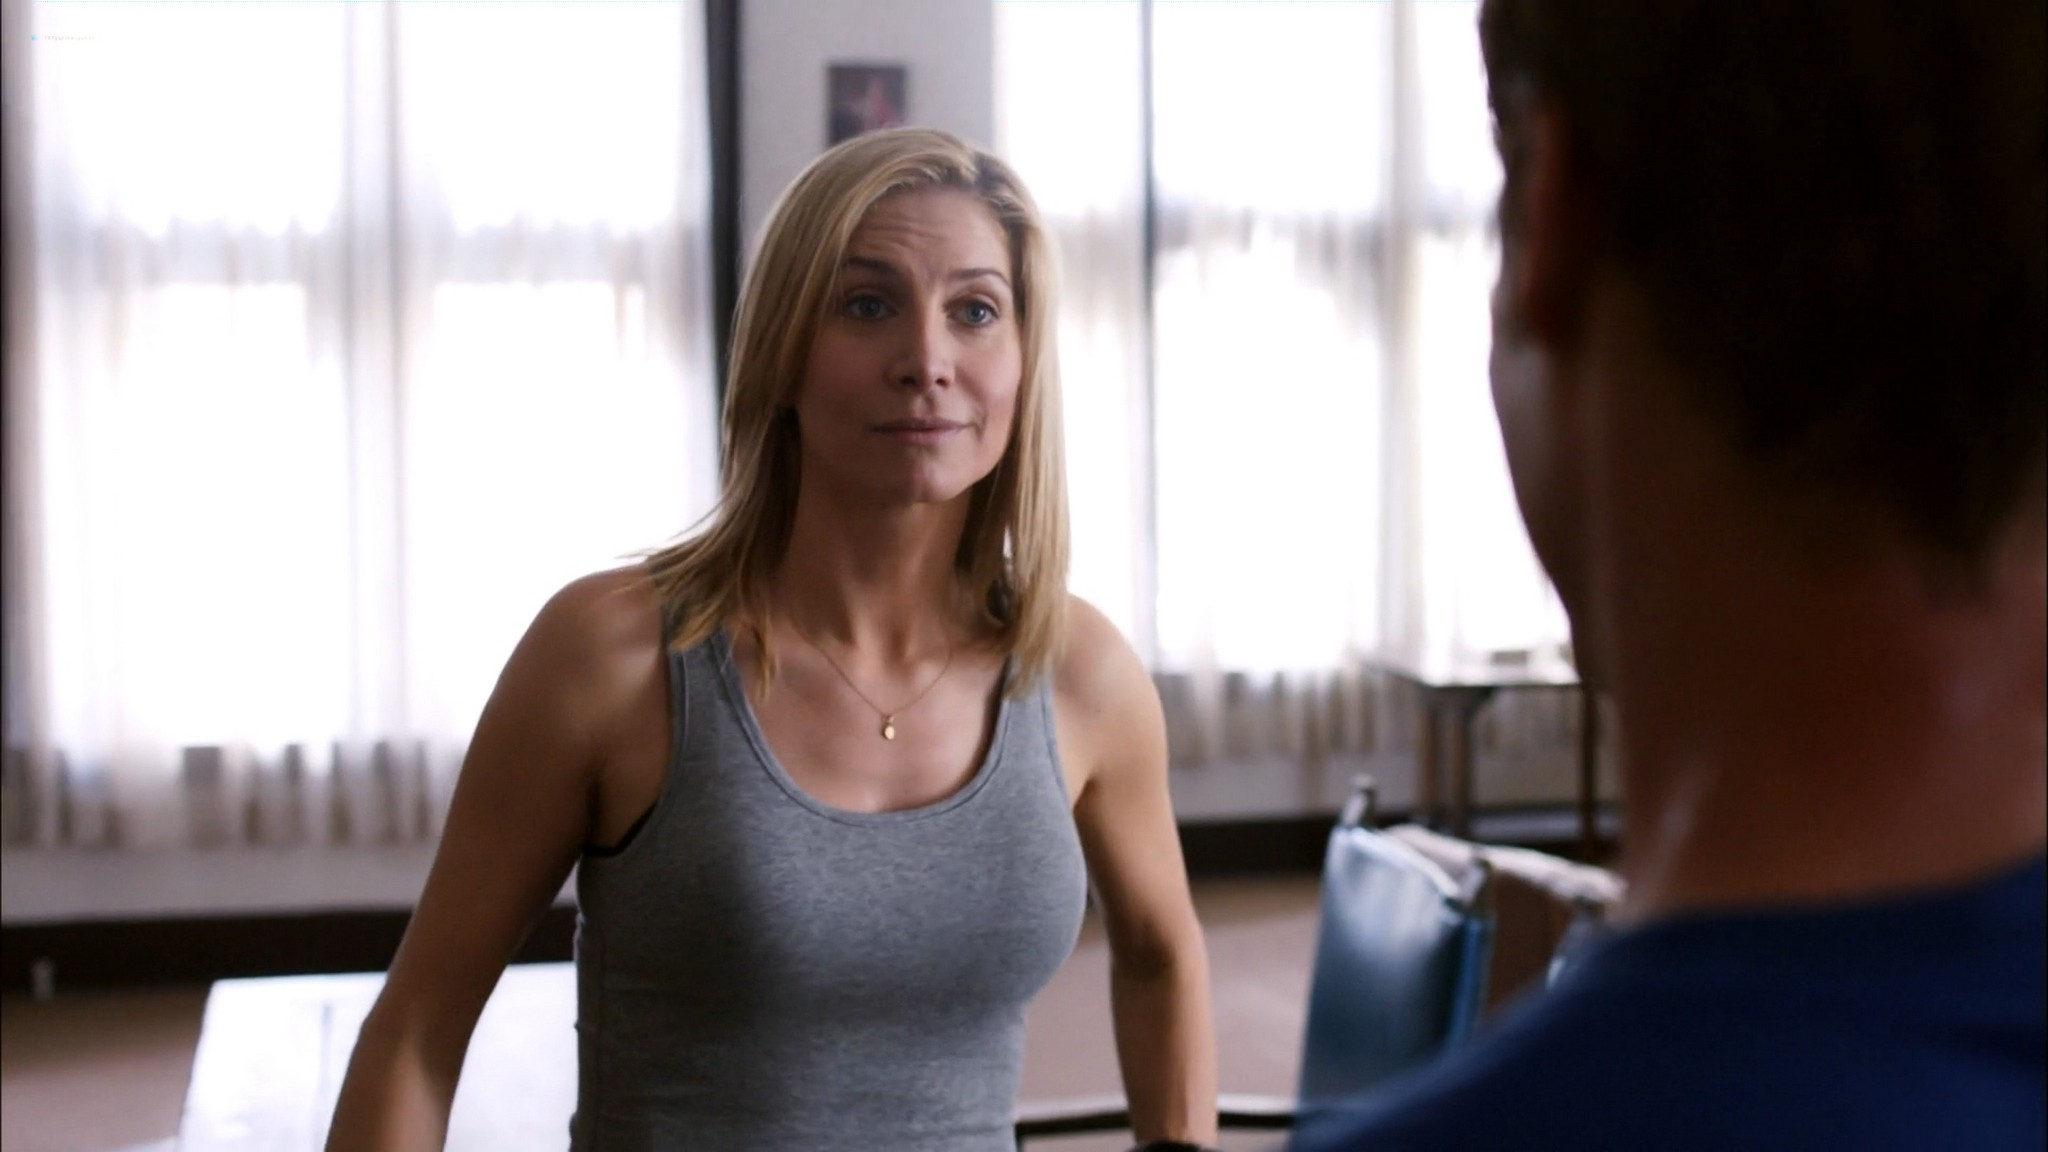 Laura Vandervoort hot and sex Morena Baccarin Elizabeth Mitchell sexy V 2009 s1e7 12 1080p BluRay 15